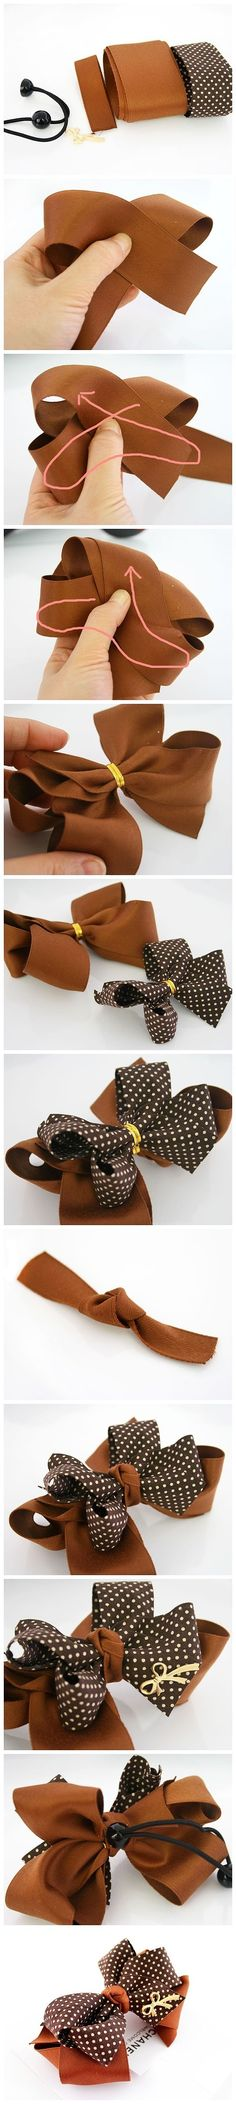 DIY Chanel Inspired Bow bows diy crafts home made easy crafts craft idea crafts ideas diy ideas diy crafts diy idea do it yourself diy projects diy craft handmade hair bows